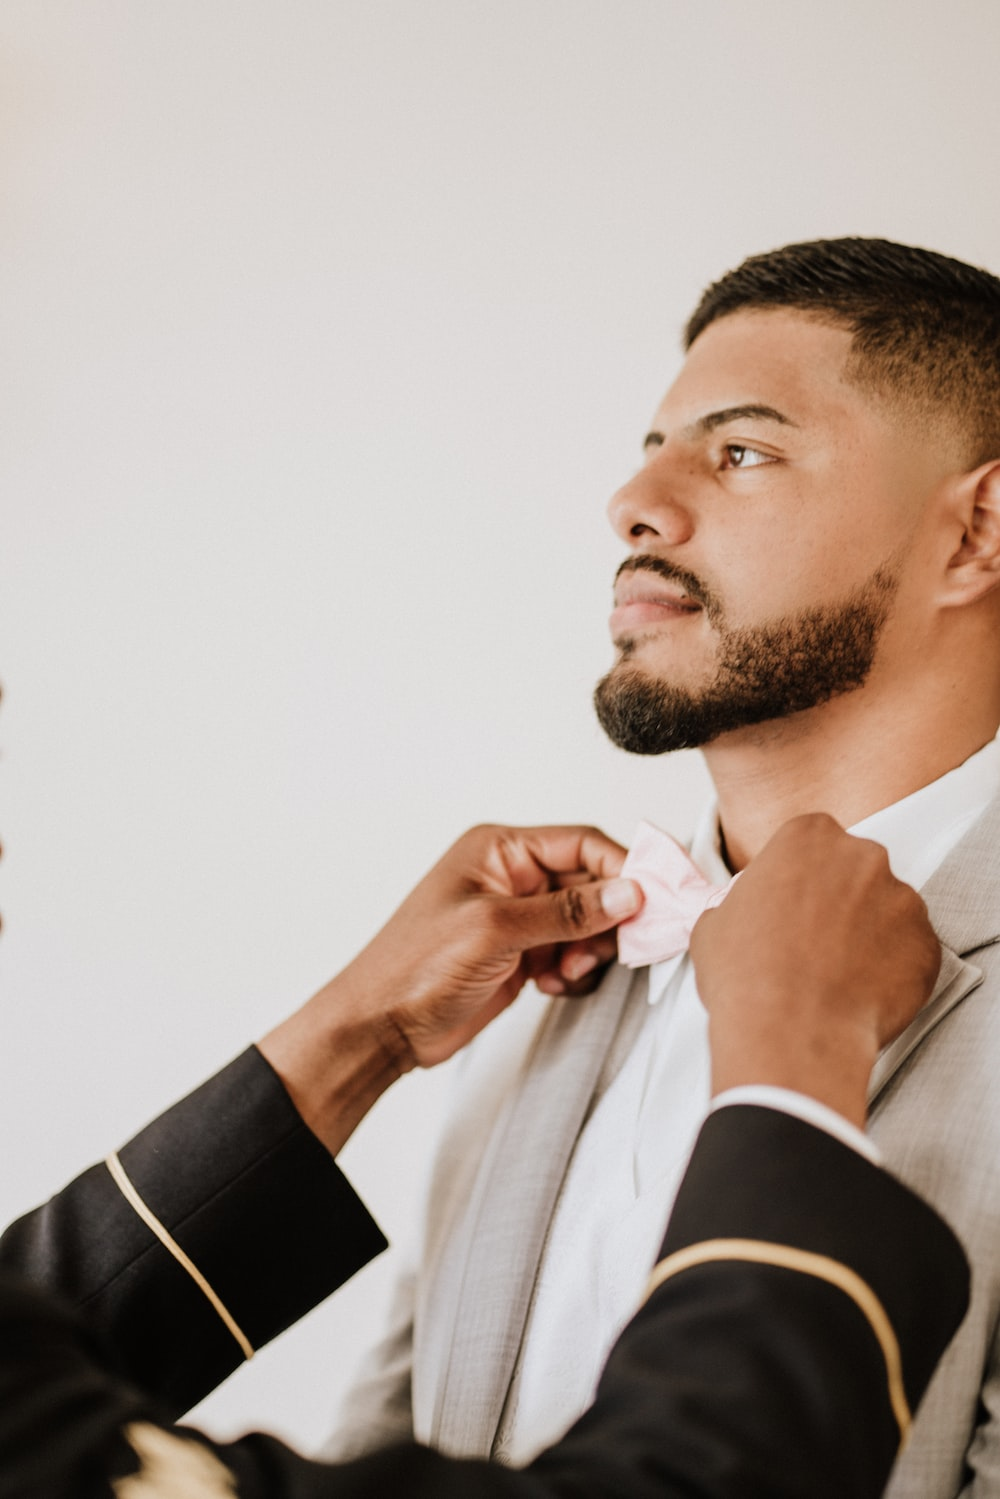 man in white coat and bowtie